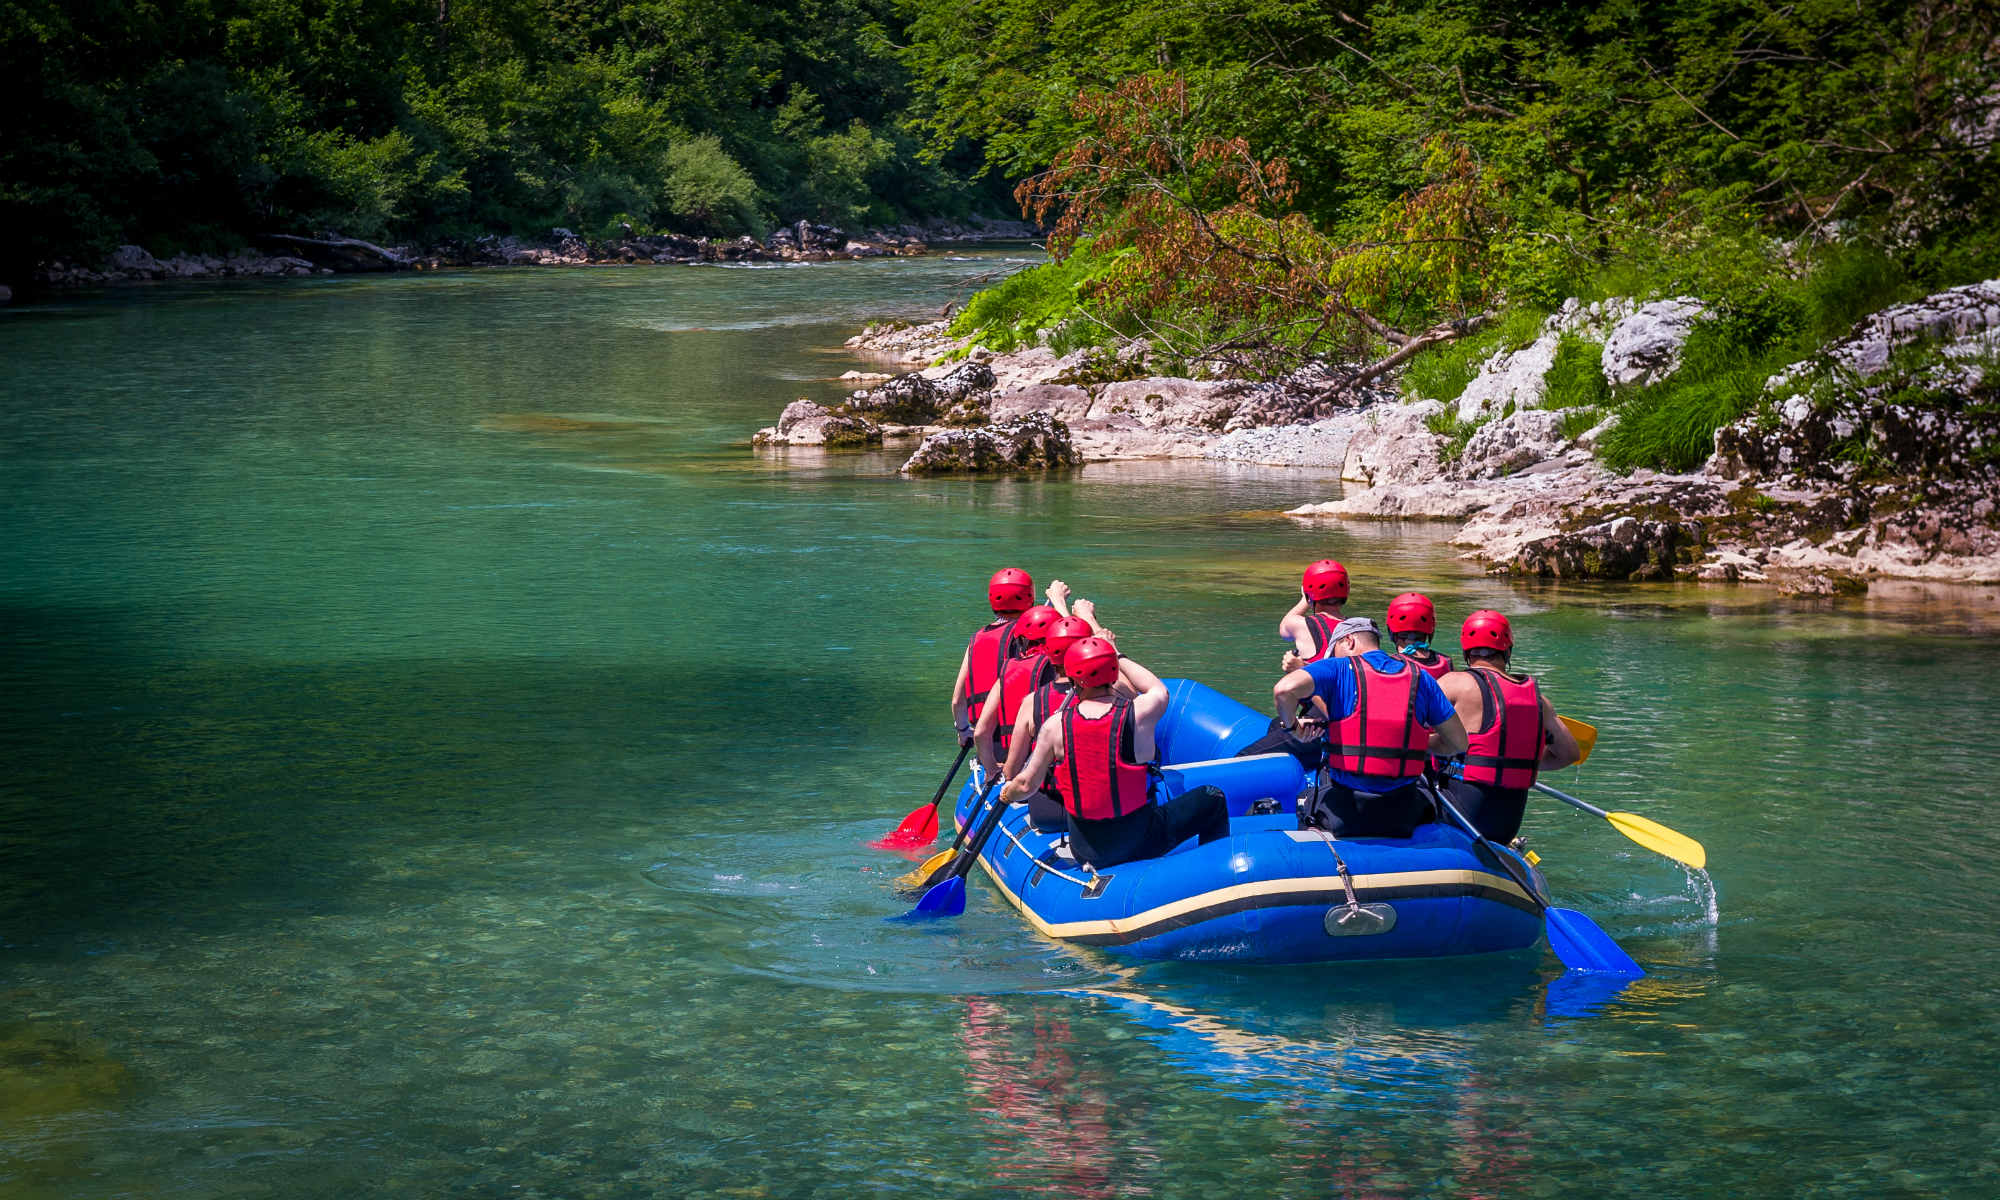 A group of people paddling through the emerald green waters of the Tara River.